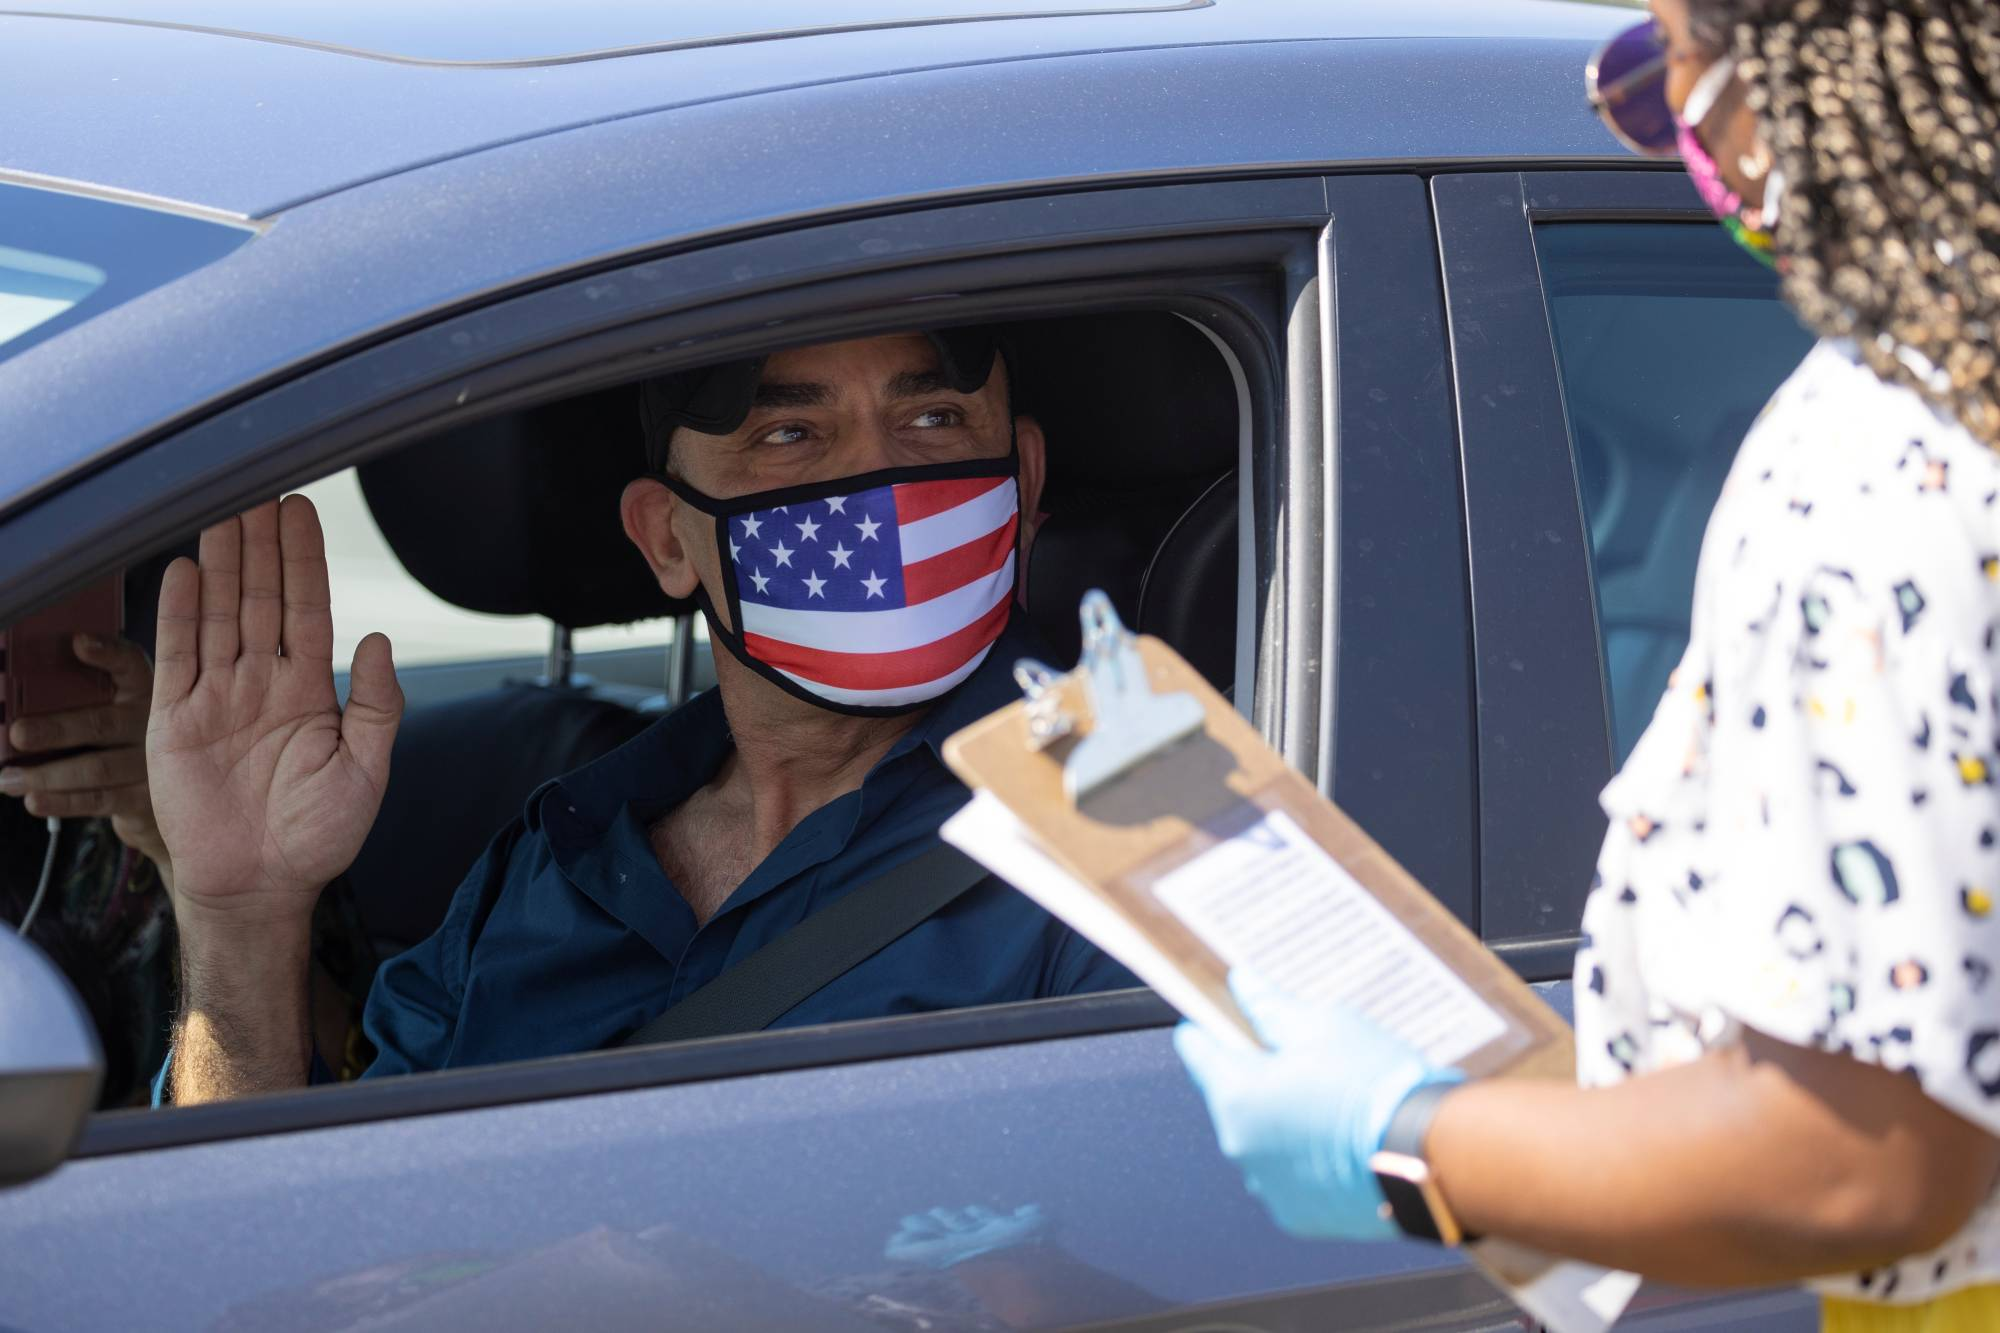 A U.S. immigration officer swears in a newly naturalized citizen in an empty parking amid the outbreak of the coronavirus disease in Santa Ana, California, in July. |  REUTERS